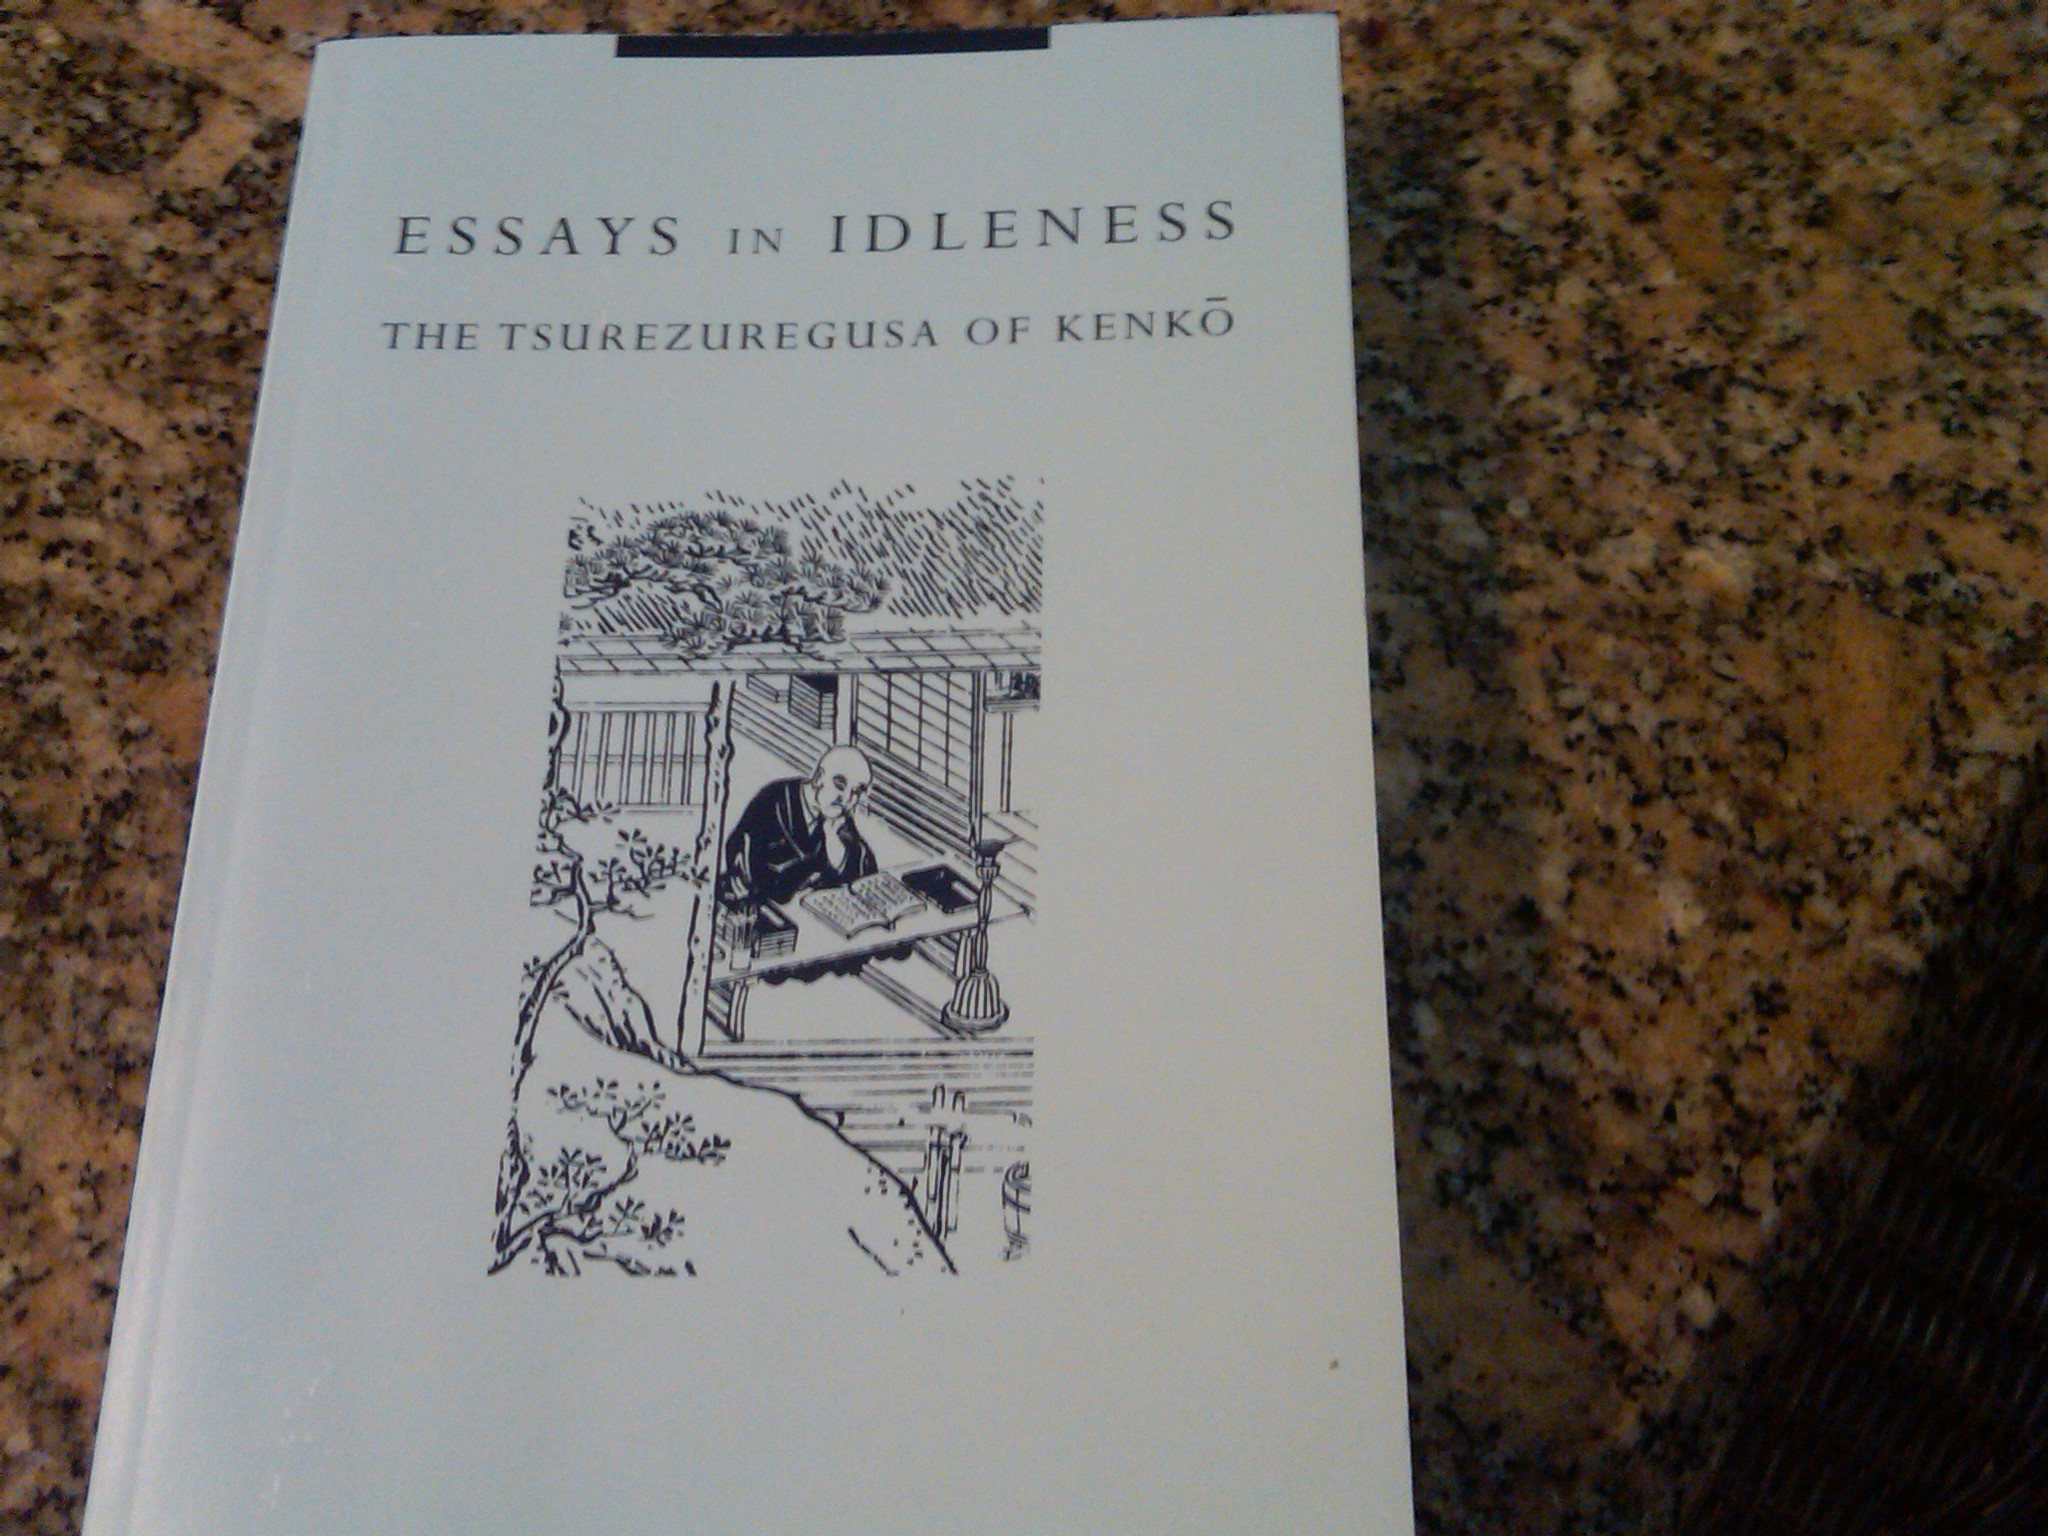 Essays in Idleness Quotes